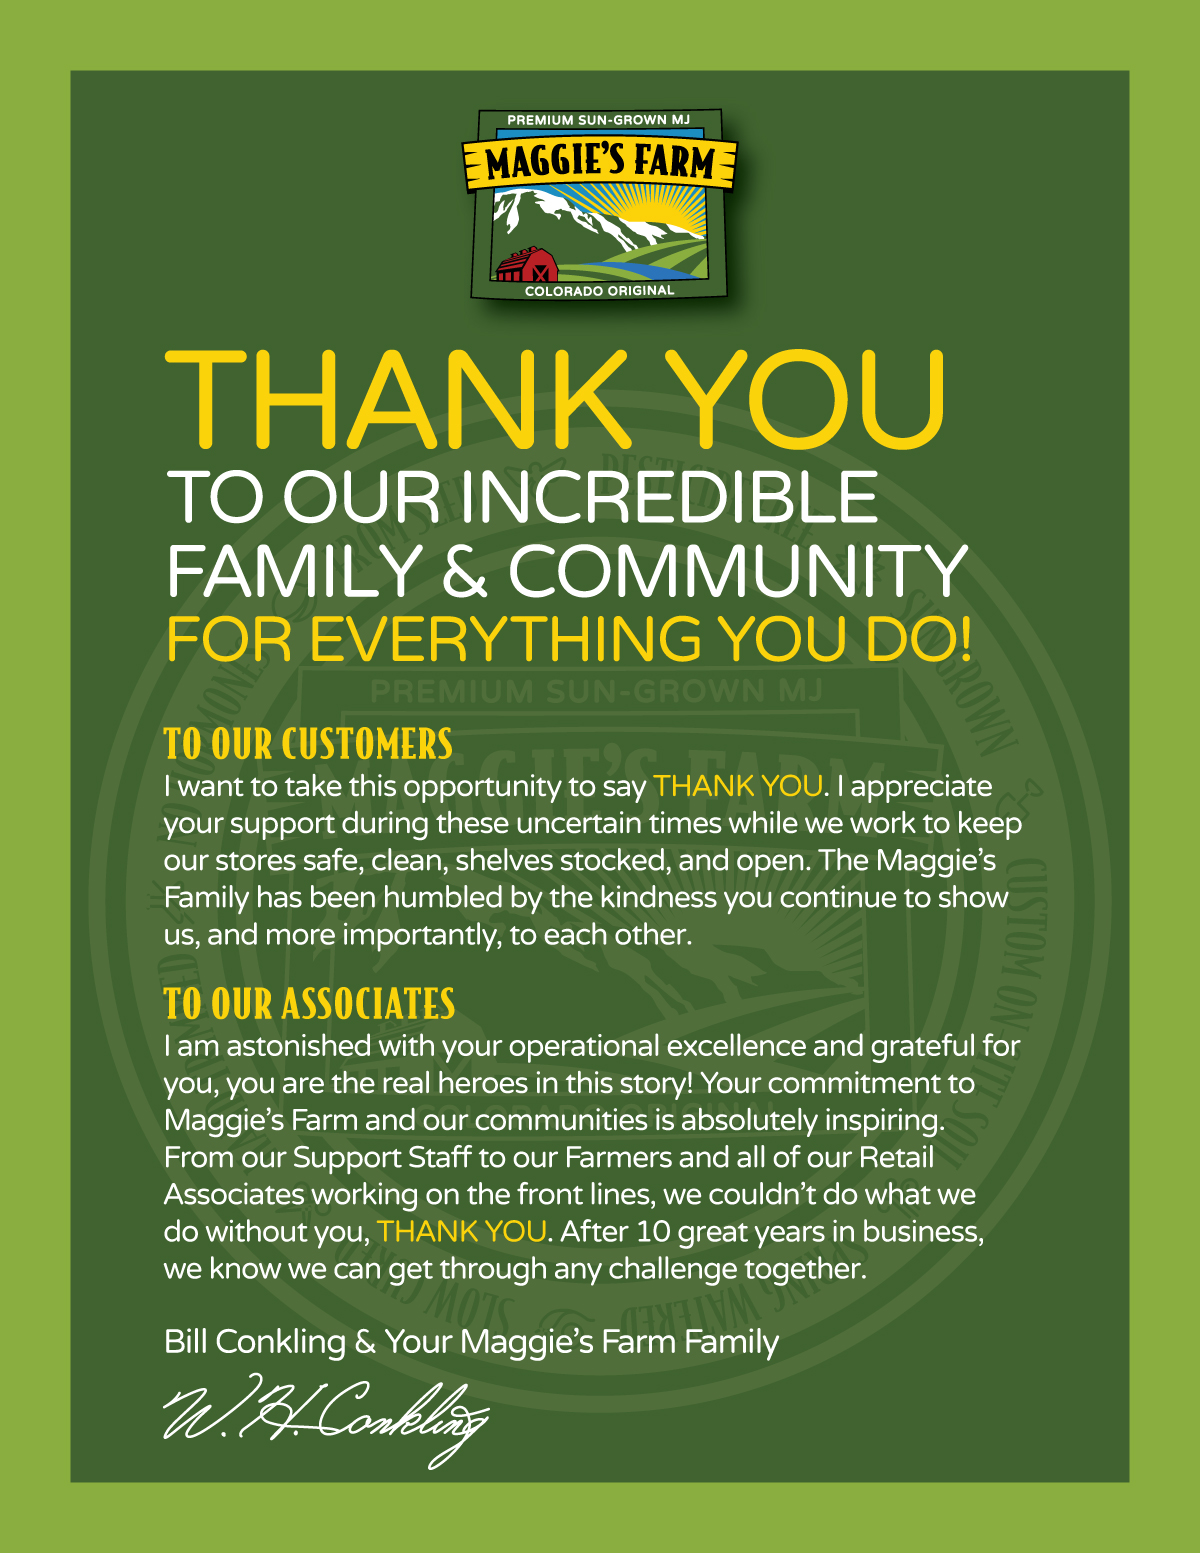 Thank You From Bill Conkling and the Maggie's Farm Family